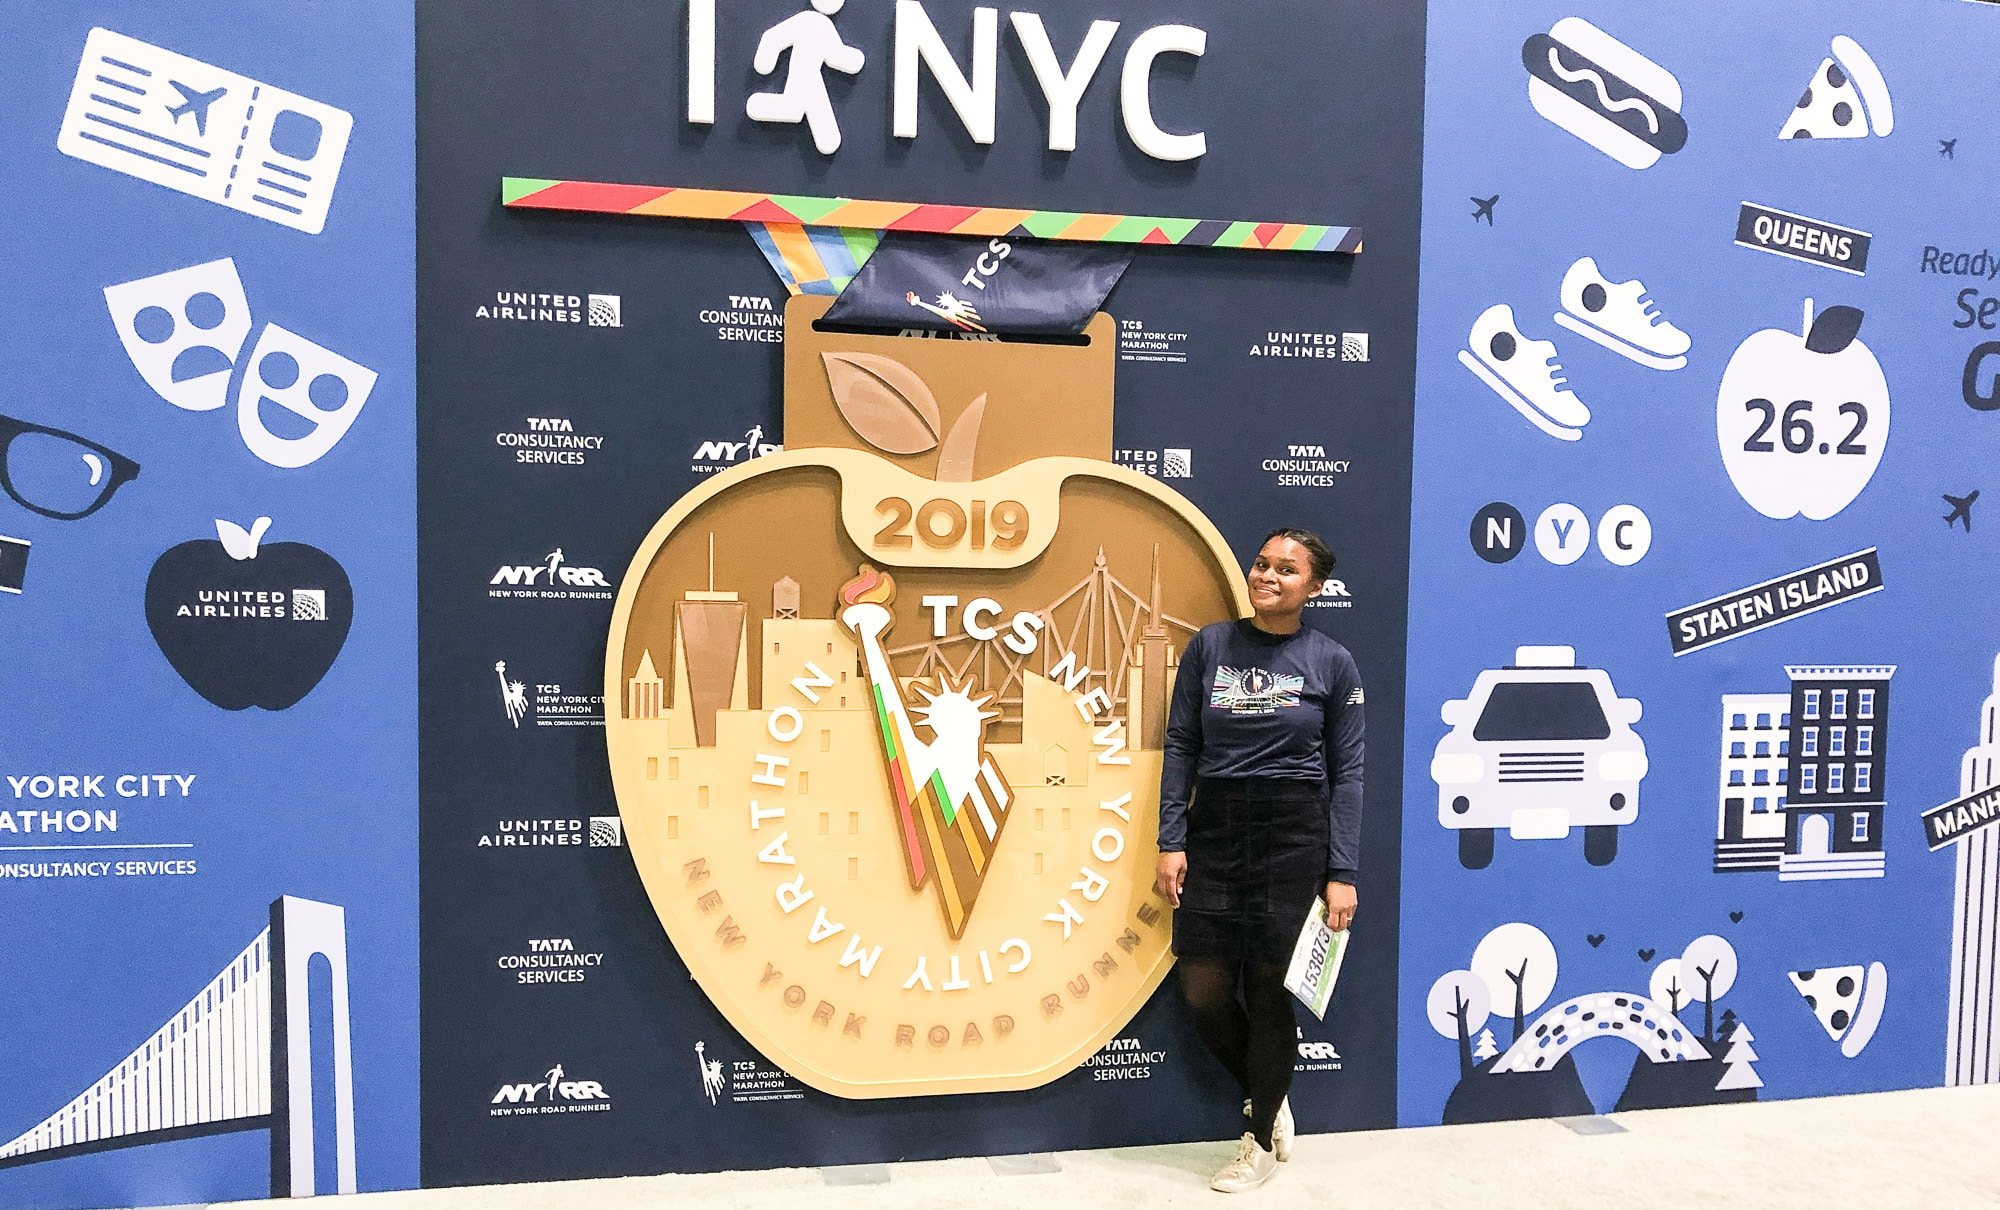 marathon-new-york-united-airlines Marathon New York 2019, un rêve qui s'est réalisé - TEAM FOR KIDS !